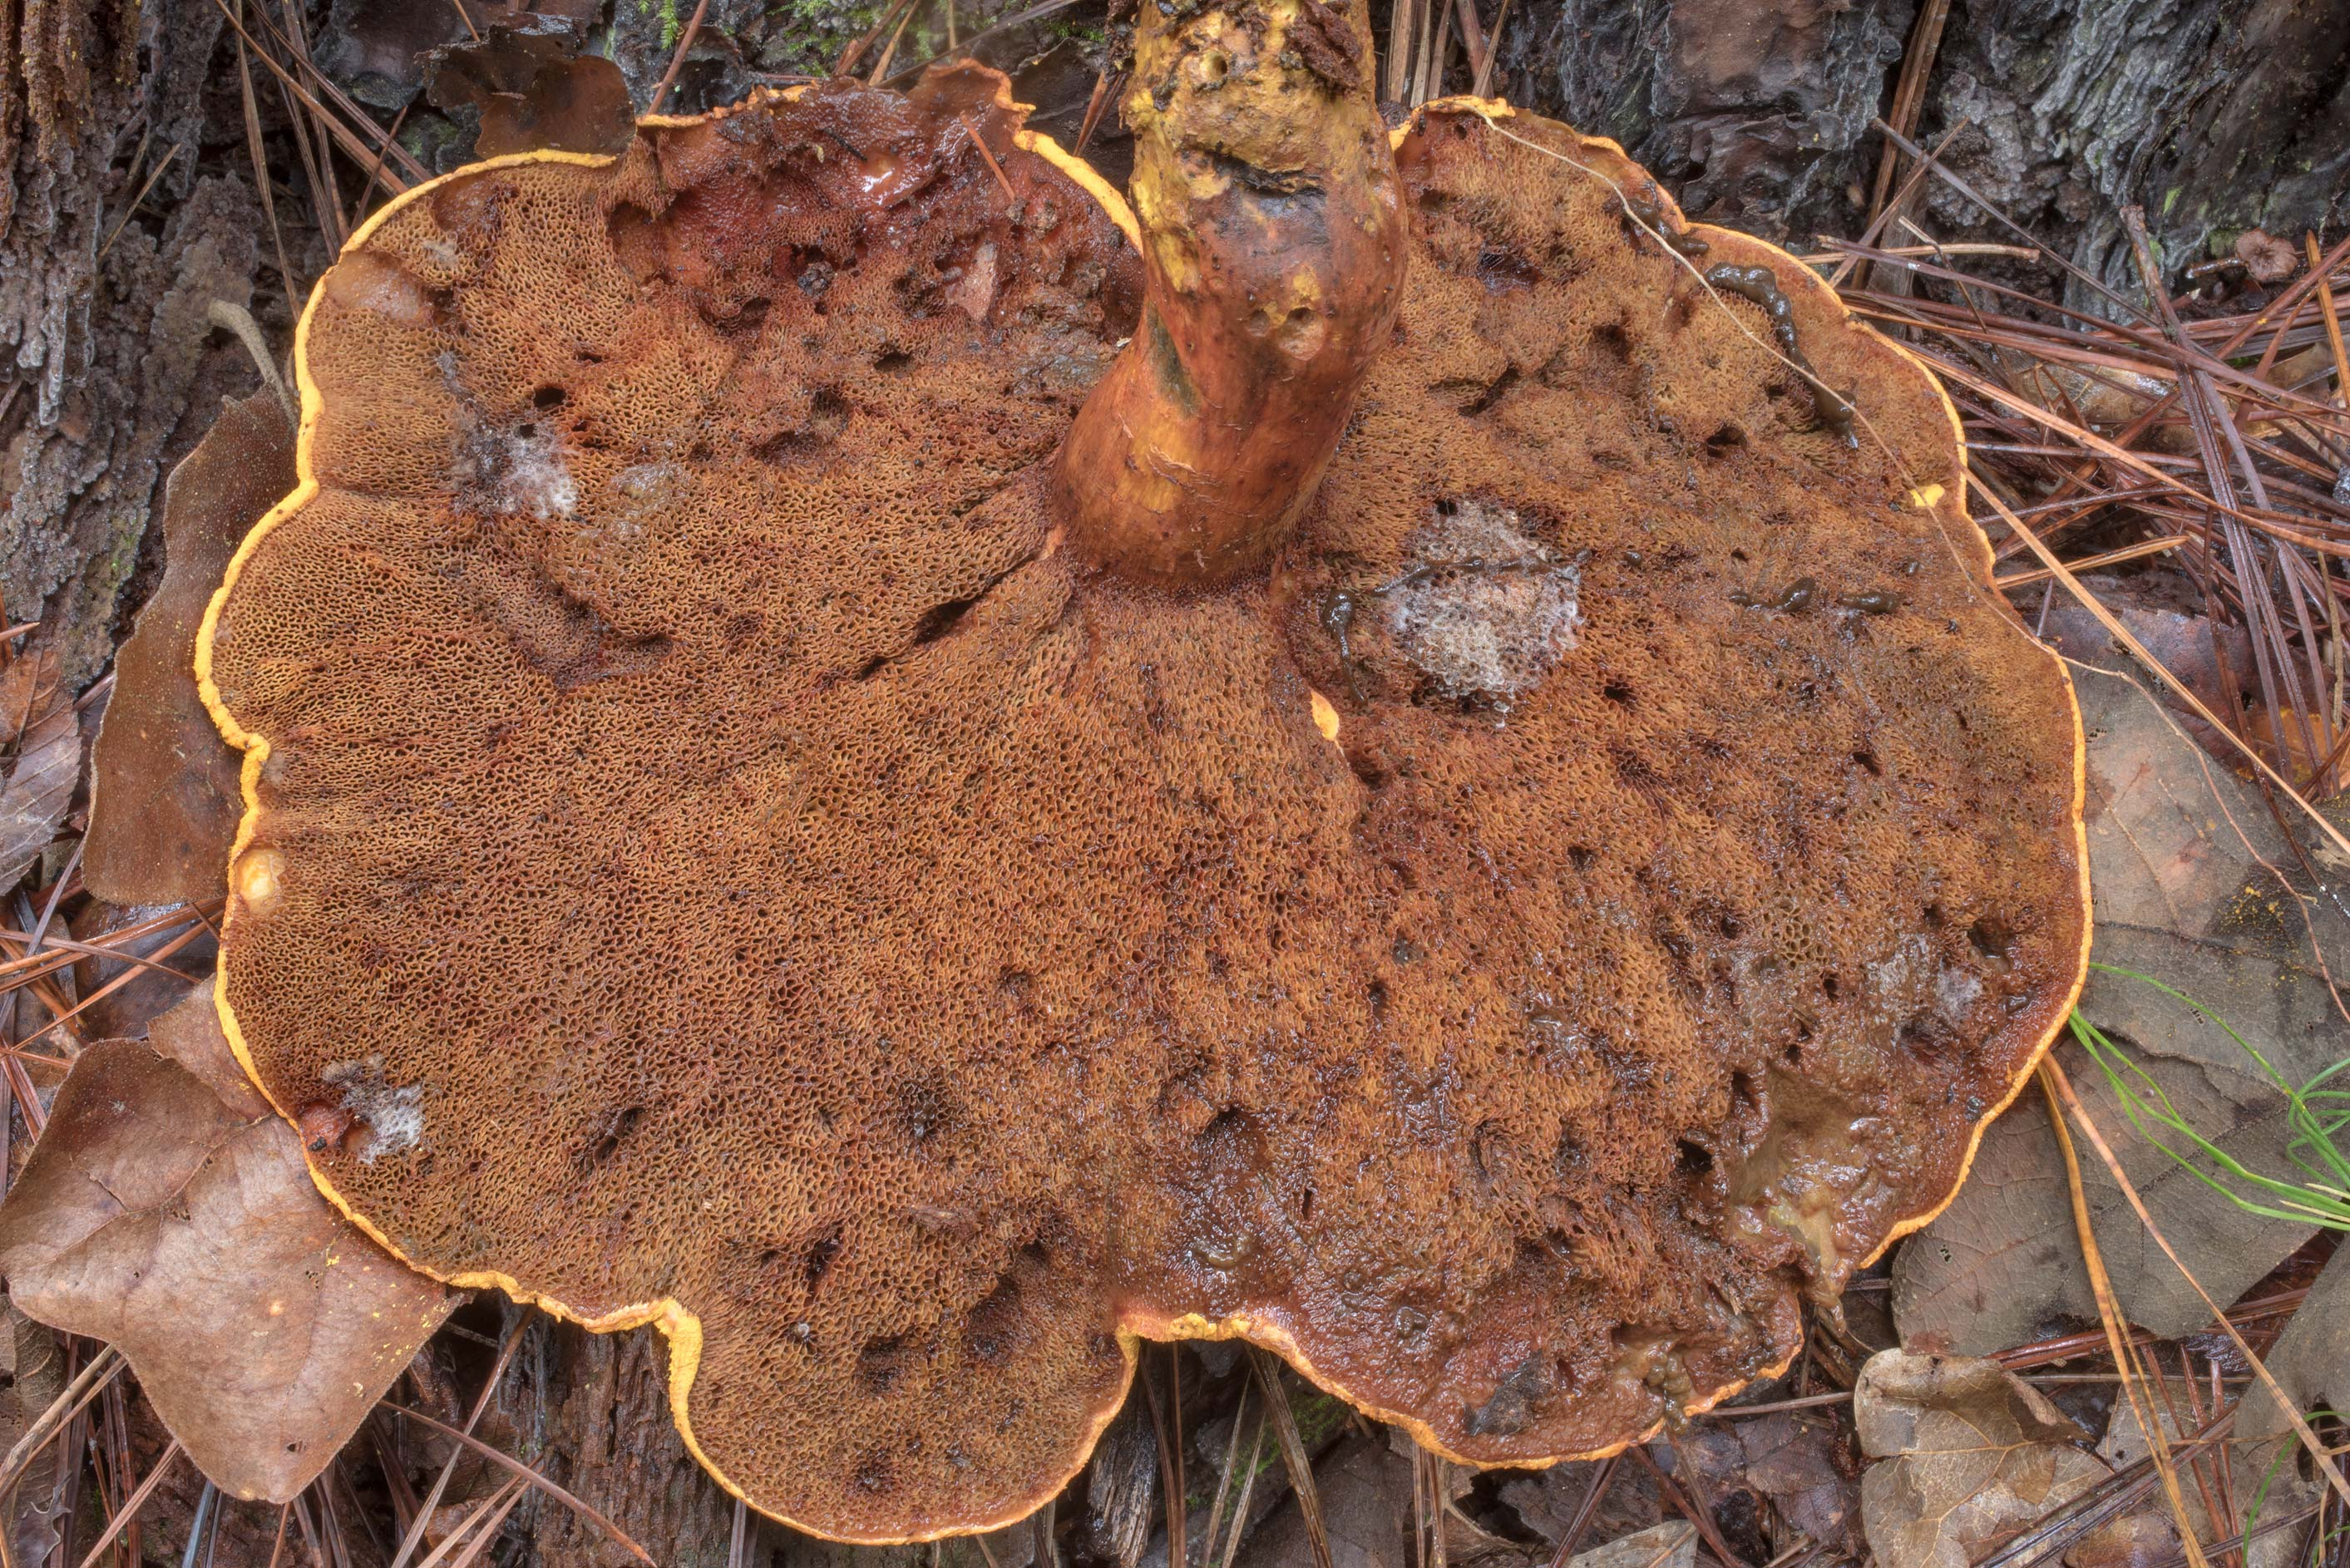 Pore surface of a large bolete mushroom...Trail in Huntsville State Park. Texas